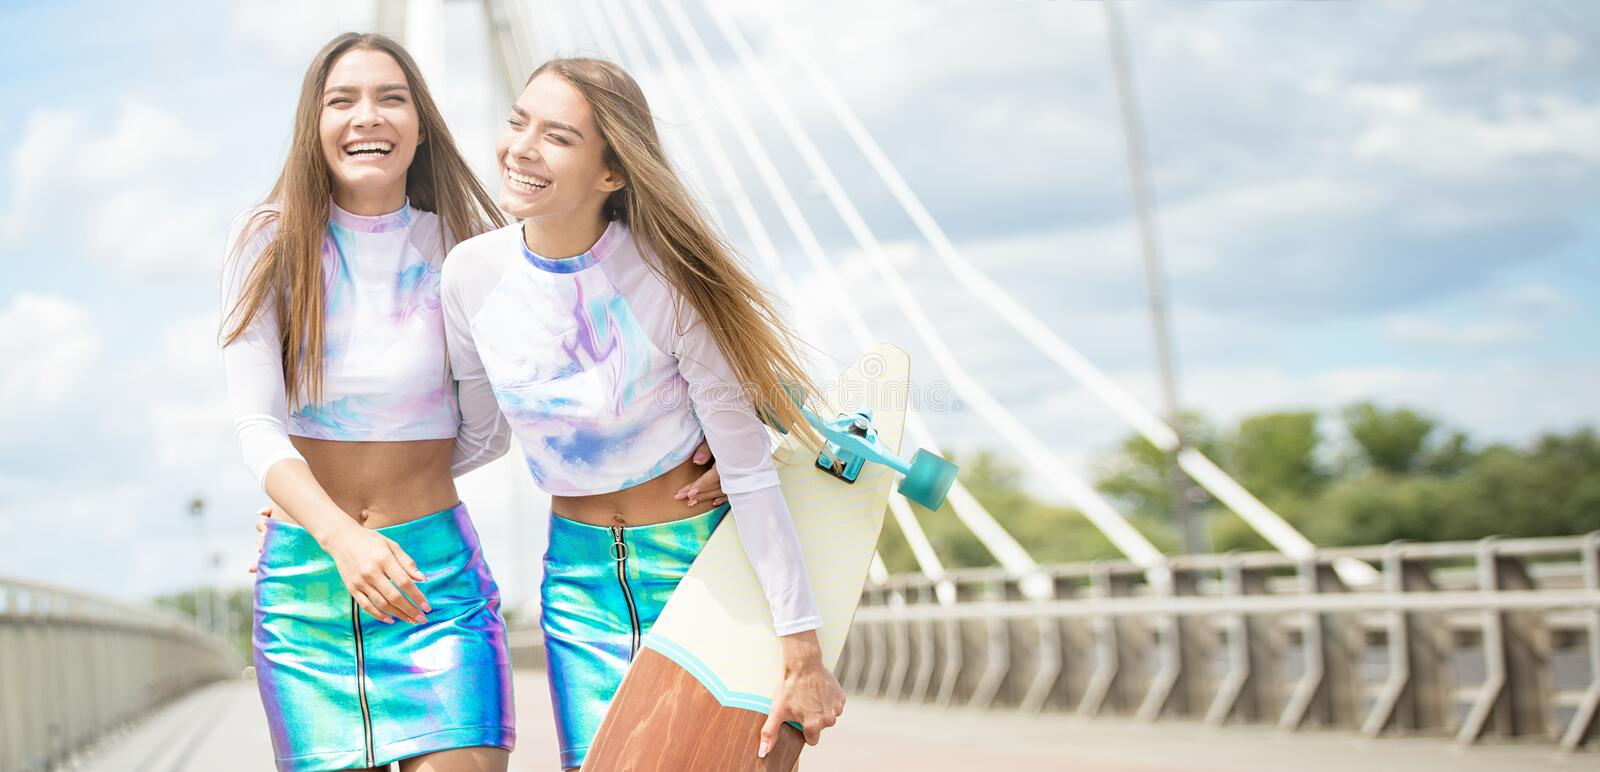 Smiling young girls with skateboard posing outdoor. stock photos